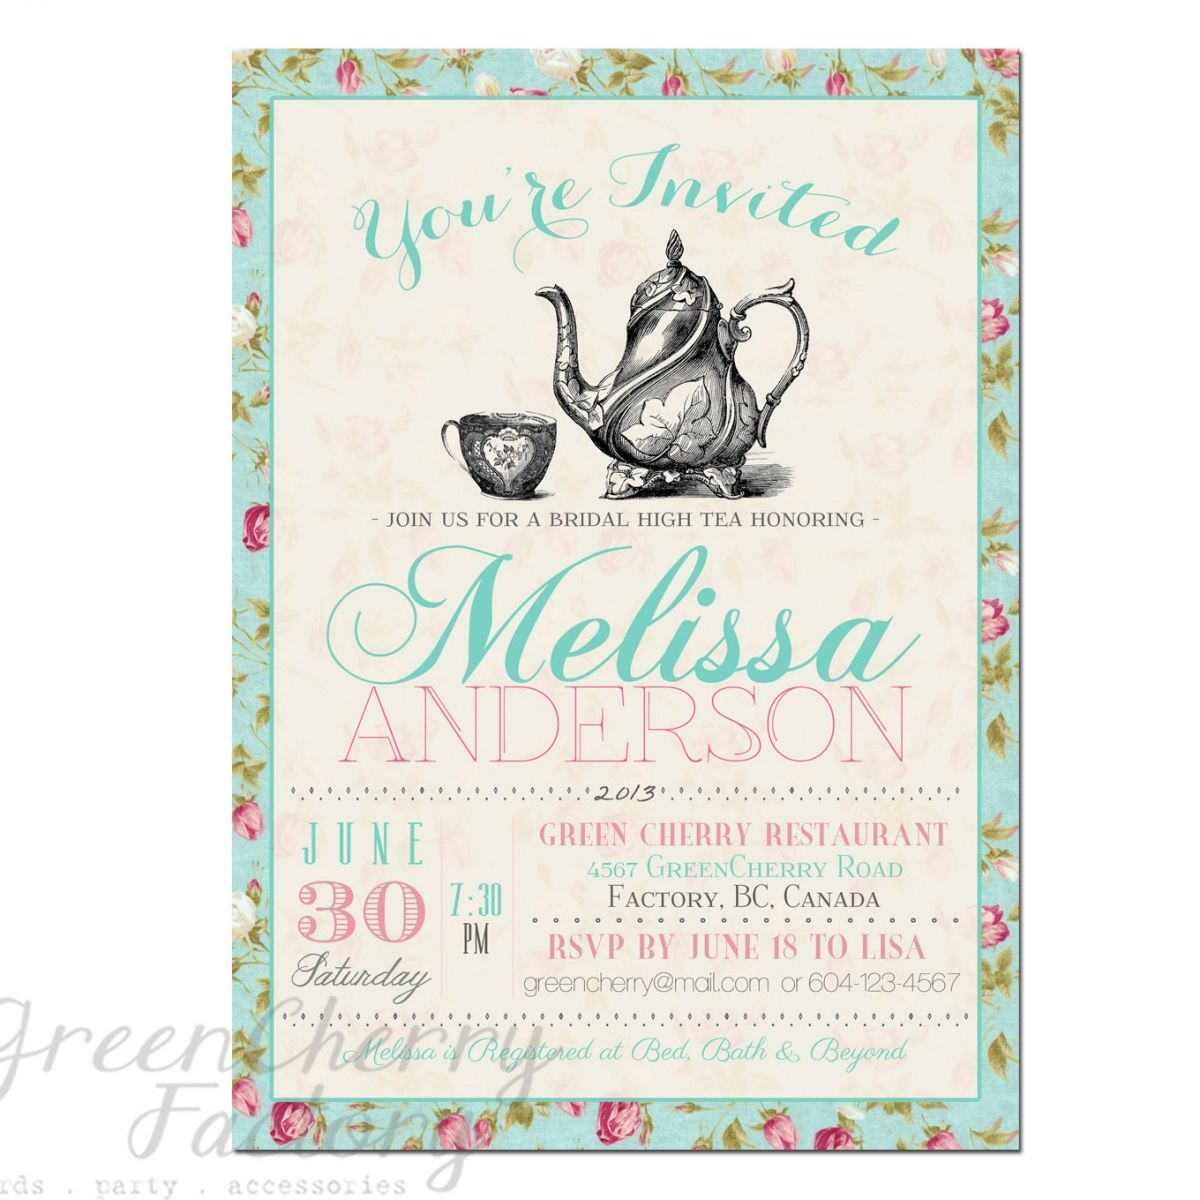 Tea party invitation templates to print free printable tea party tea party invitation templates to print free printable tea party invitations templates stopboris Gallery